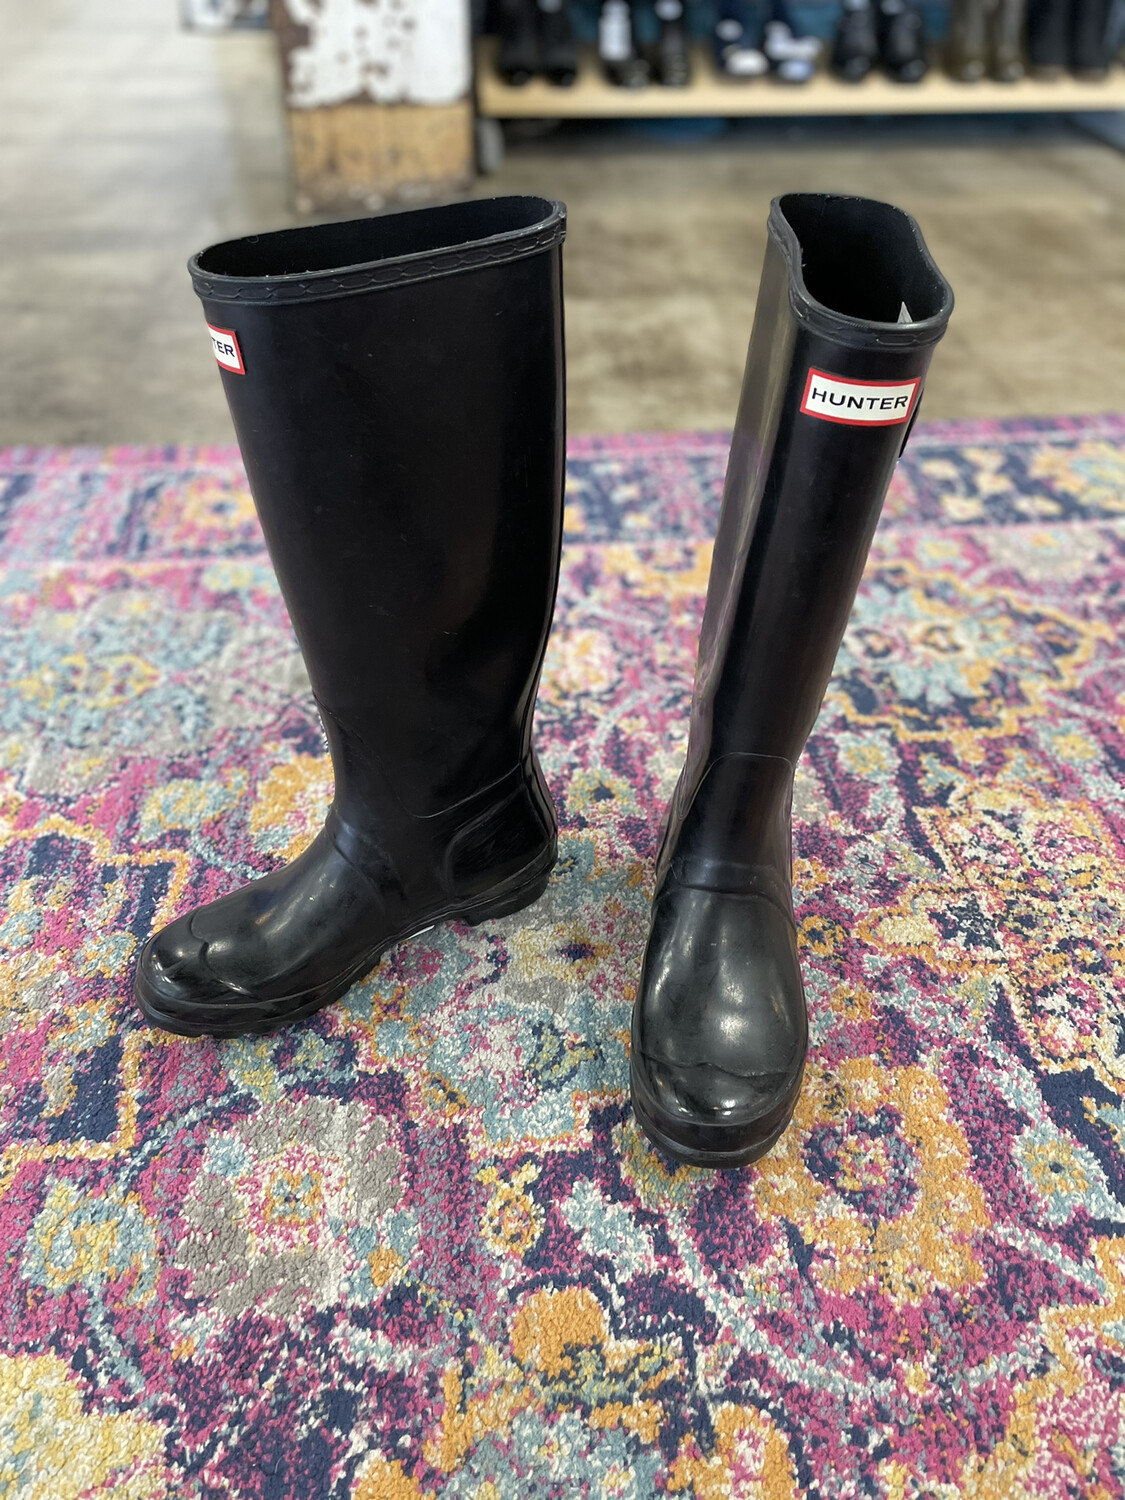 Hunter Black Tall Rain Boots - Size 7